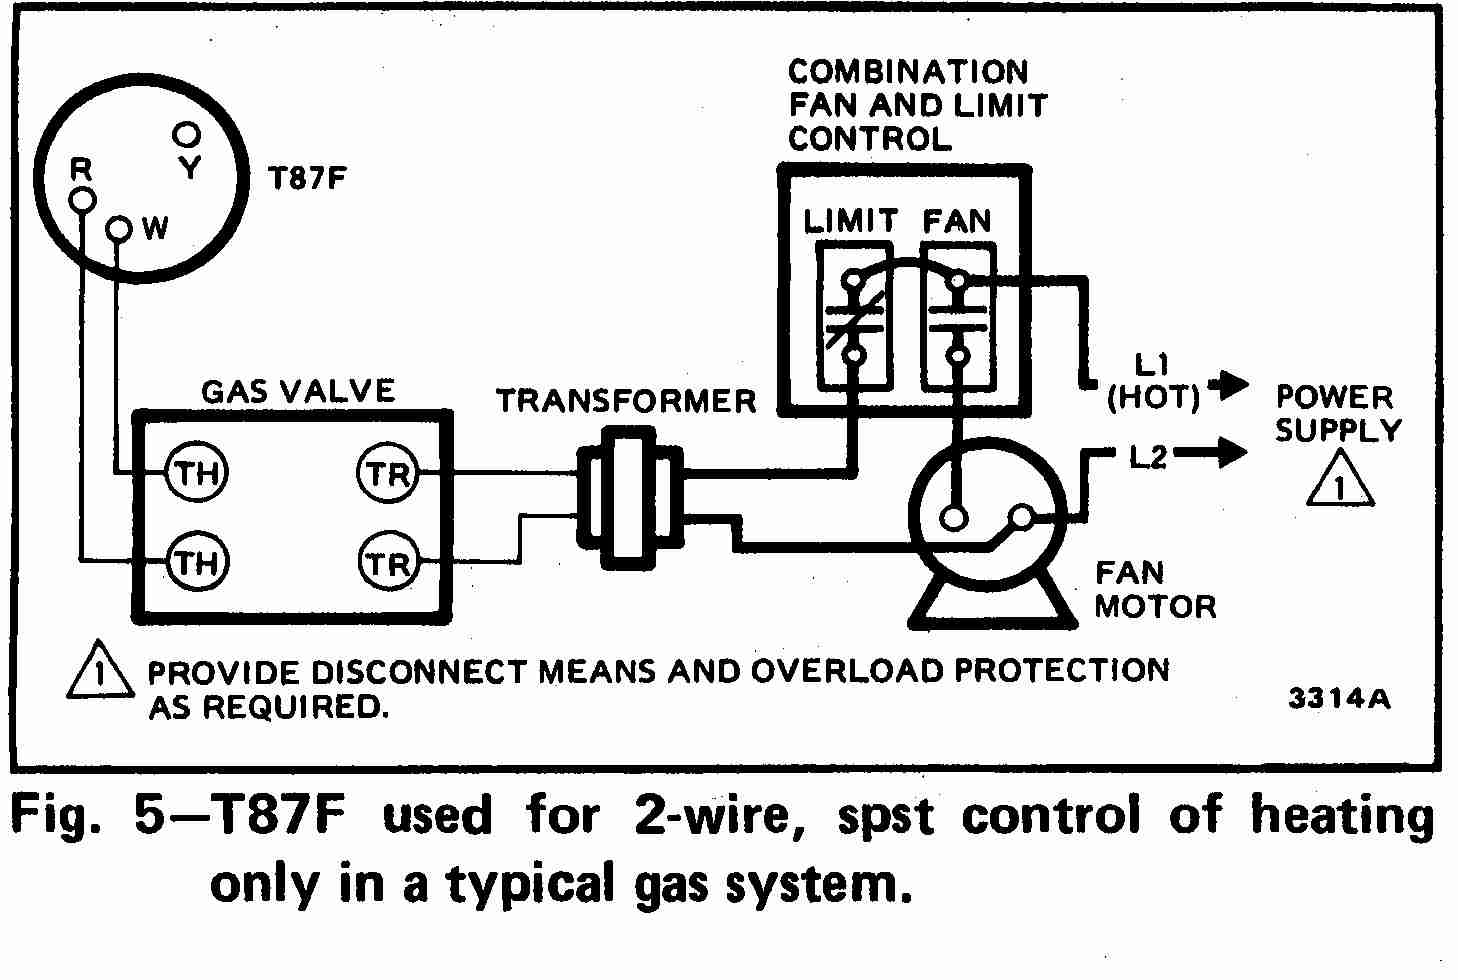 TT_T87F_0002_2Wg_DJF space heater wiring diagram s700 electric heater wire diagram Basic Outlet Wiring Diagrams at panicattacktreatment.co